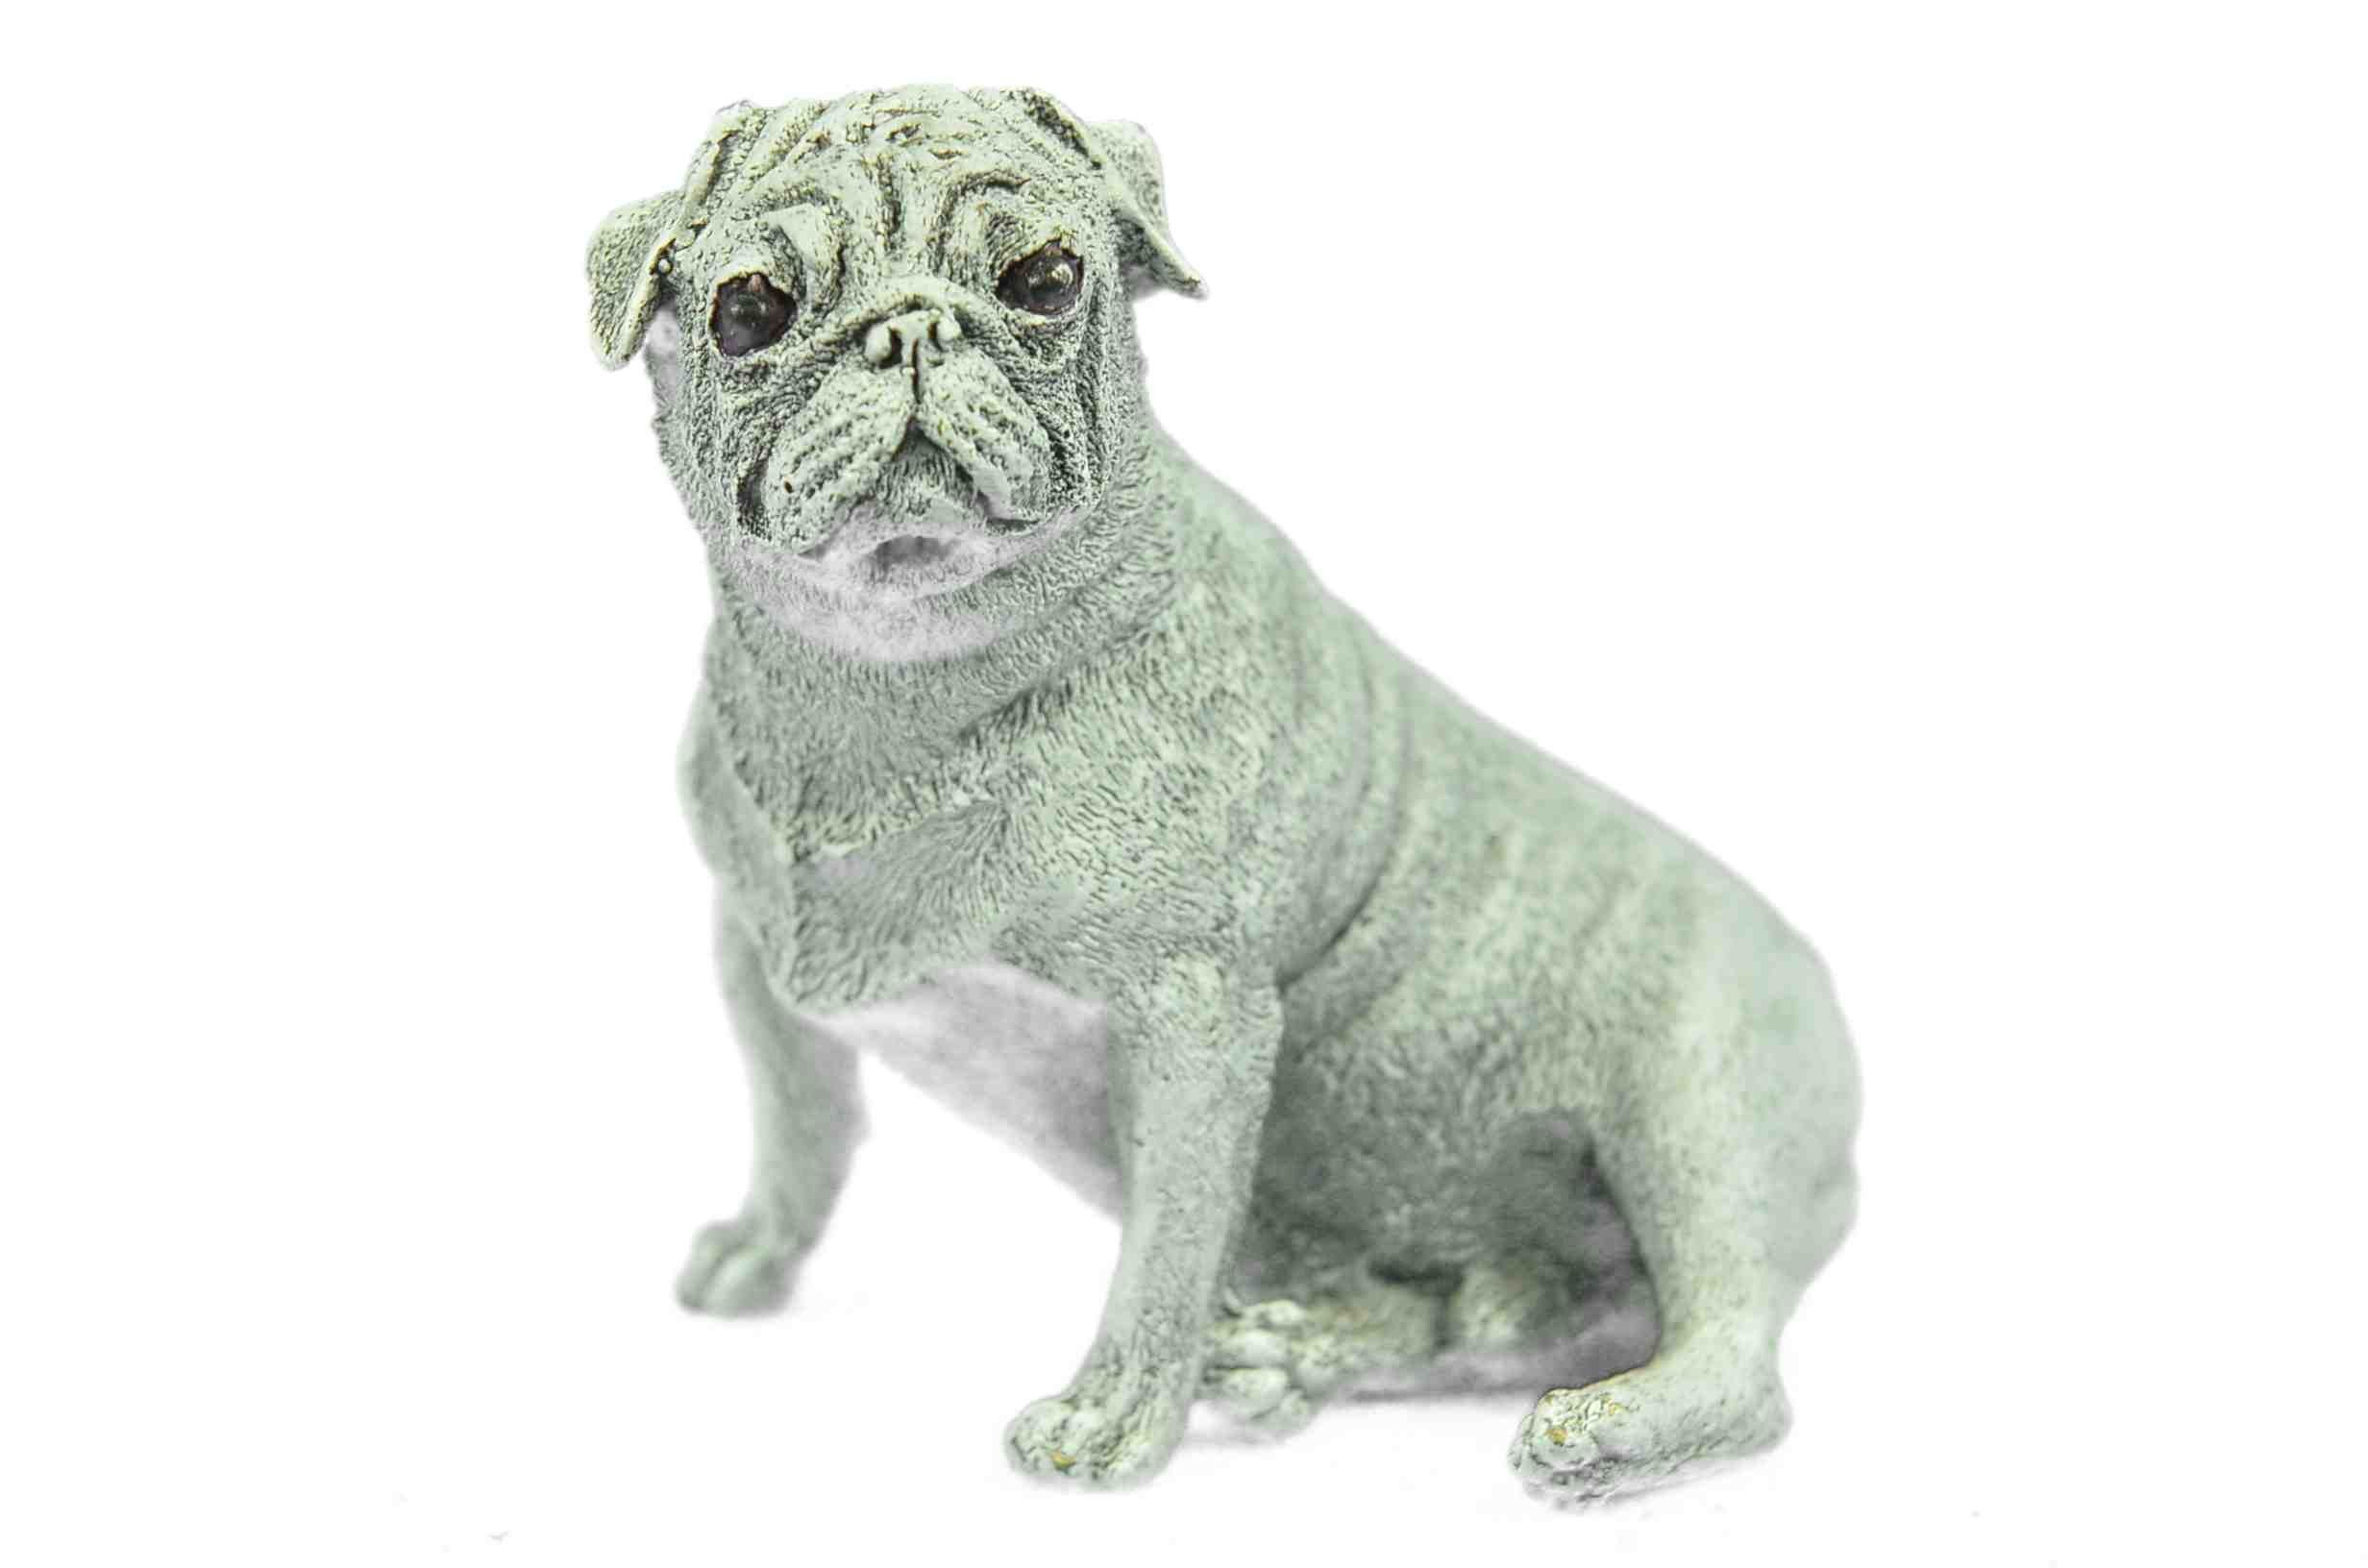 "PUG Puppy Dog Hot Cast Bronze Signed Figurine 3.5"" x 4.5"" (White Patina)"